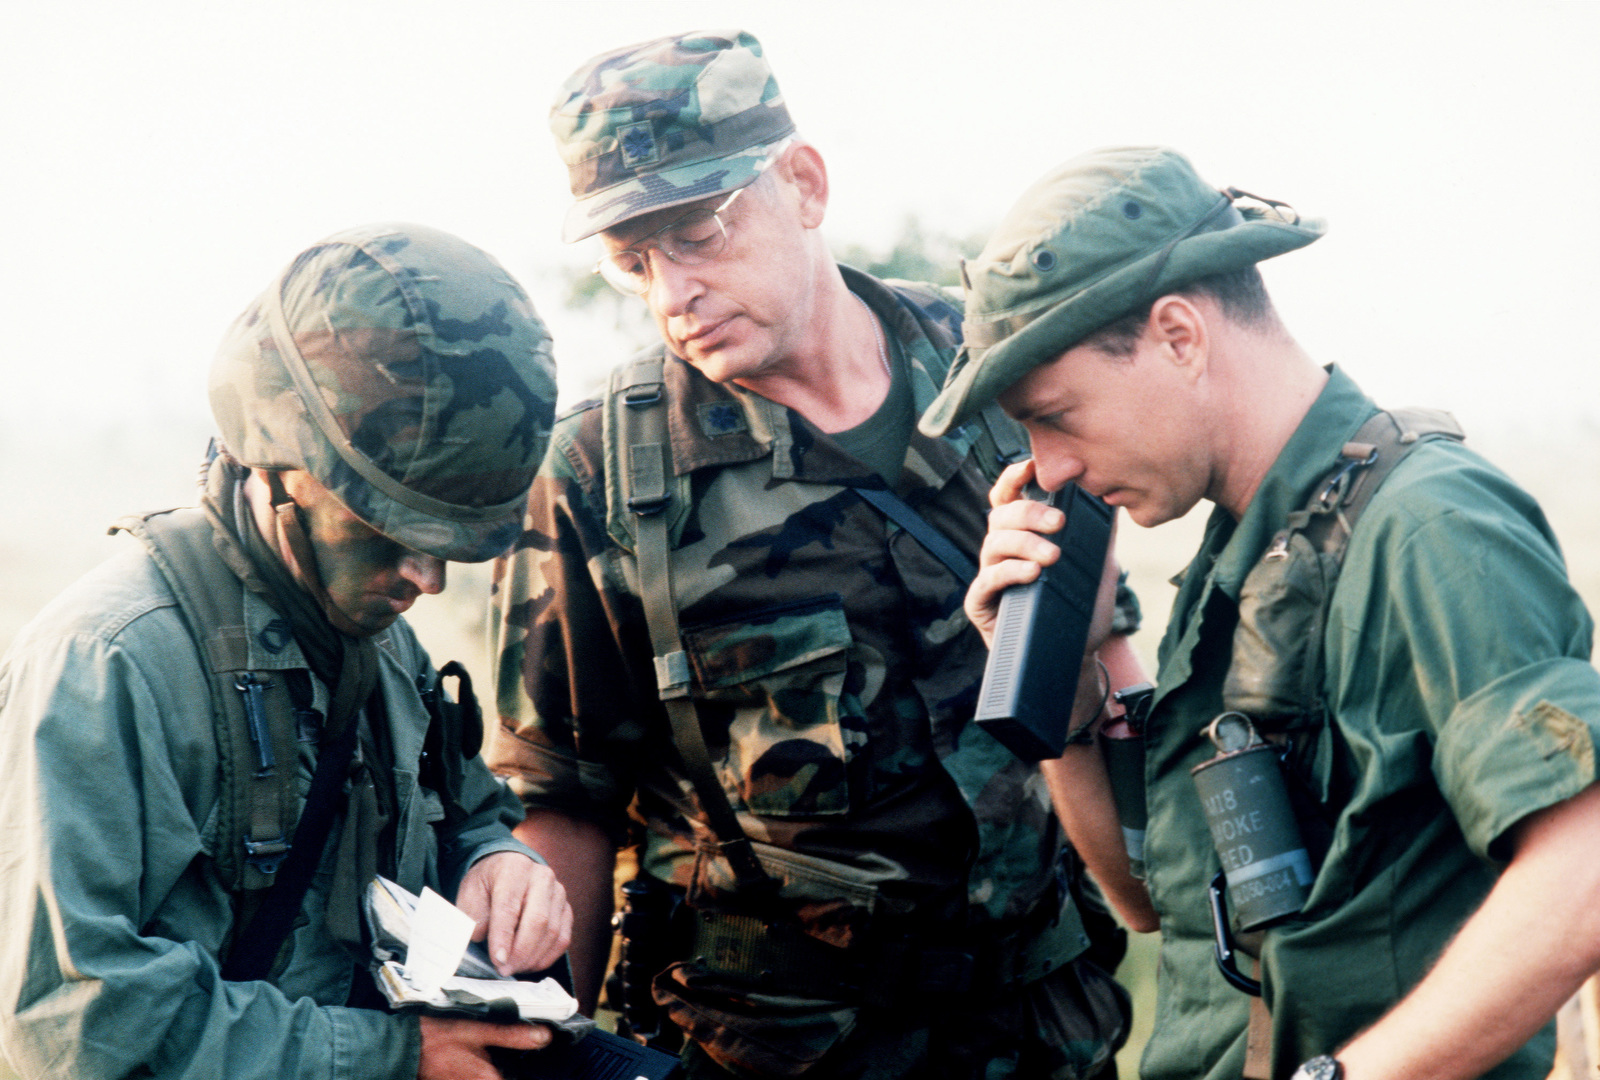 Sergeant (SGT) Shaw, left, of the 27th Engineering Battalion; Lieutenant Colonel (LTC) Williams, the Military Airlift Command representatives; and Captain (CPT) Card, 317th Combat Control Team, discuss details of the airdrop during Exercise CABANAS '86